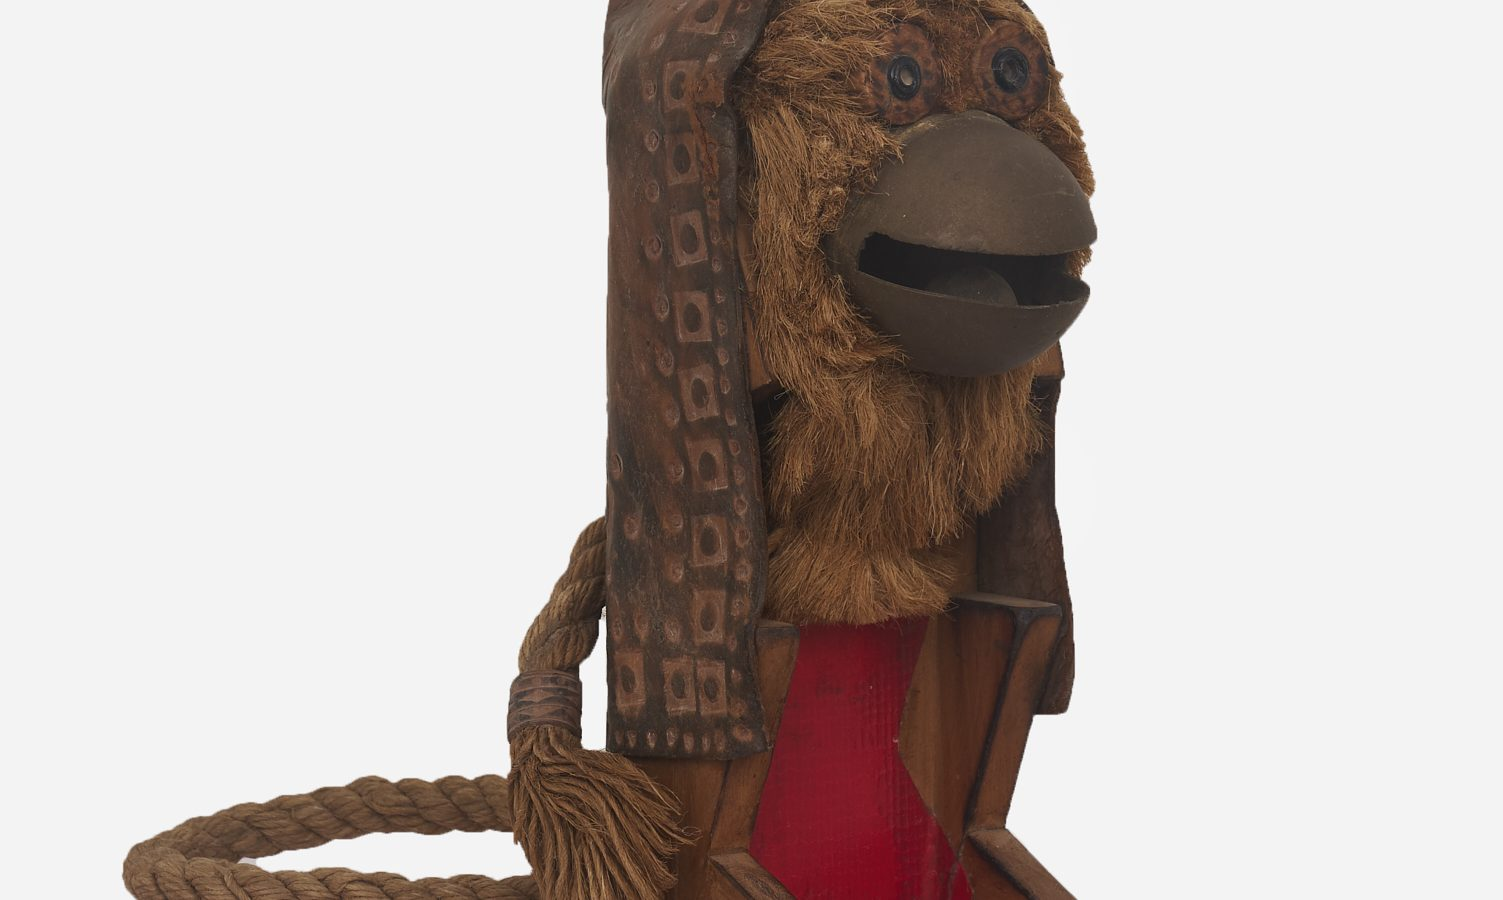 K. G. Subramanyan. Untitled (Monkey), Wooden toy with mixed media, 1960s - 90s. Courtesy of Akara Art